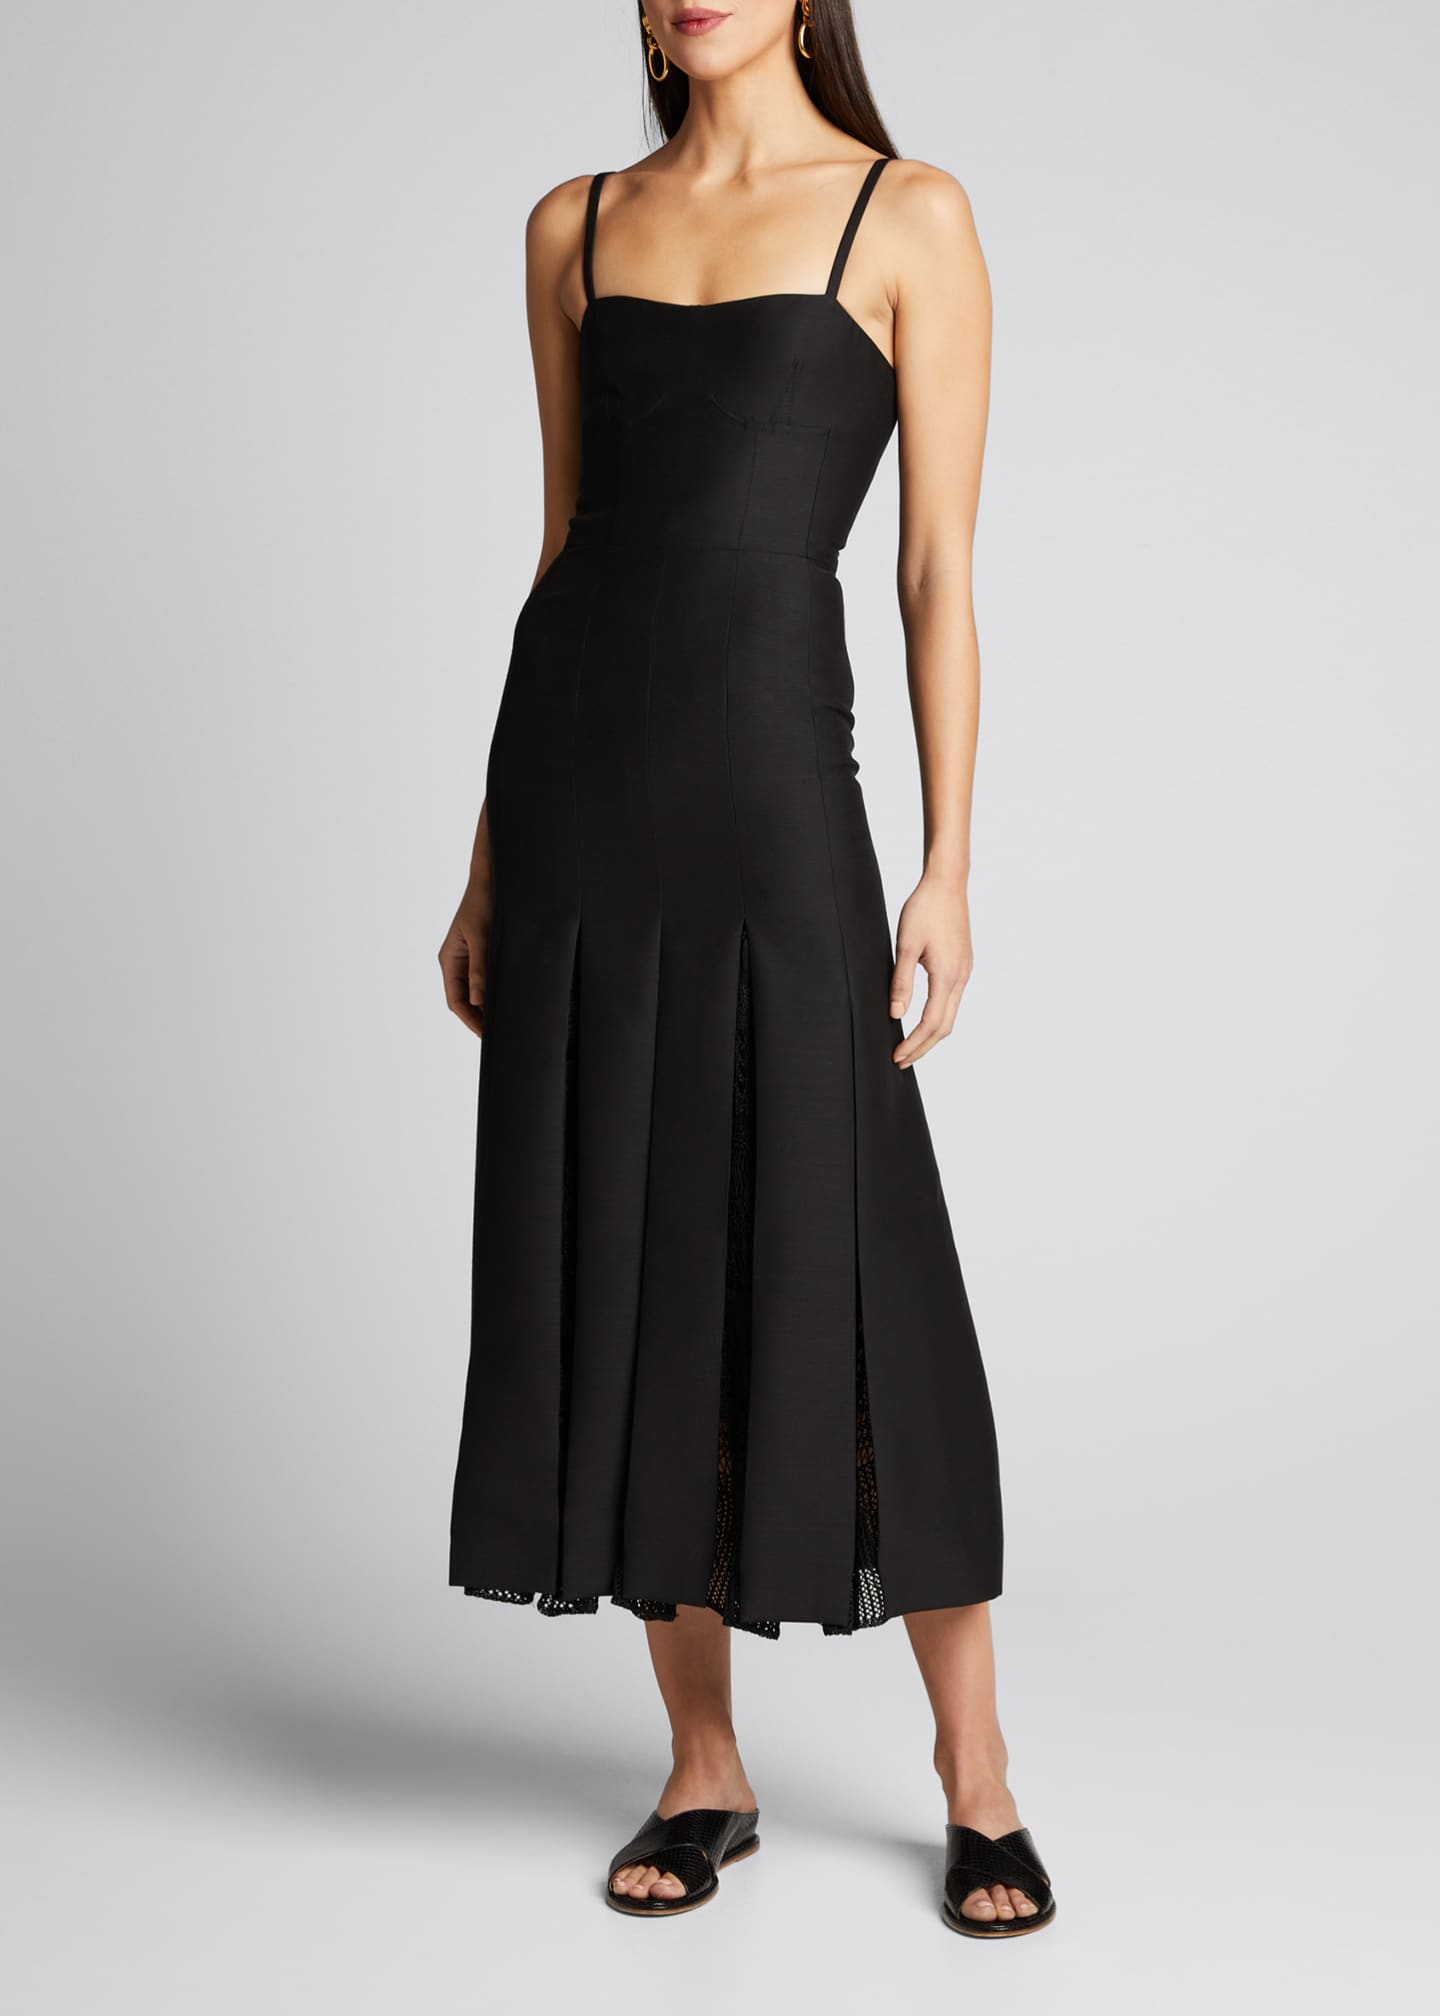 Gabriela Hearst Godard Pleated Mesh-Panel Midi Dress